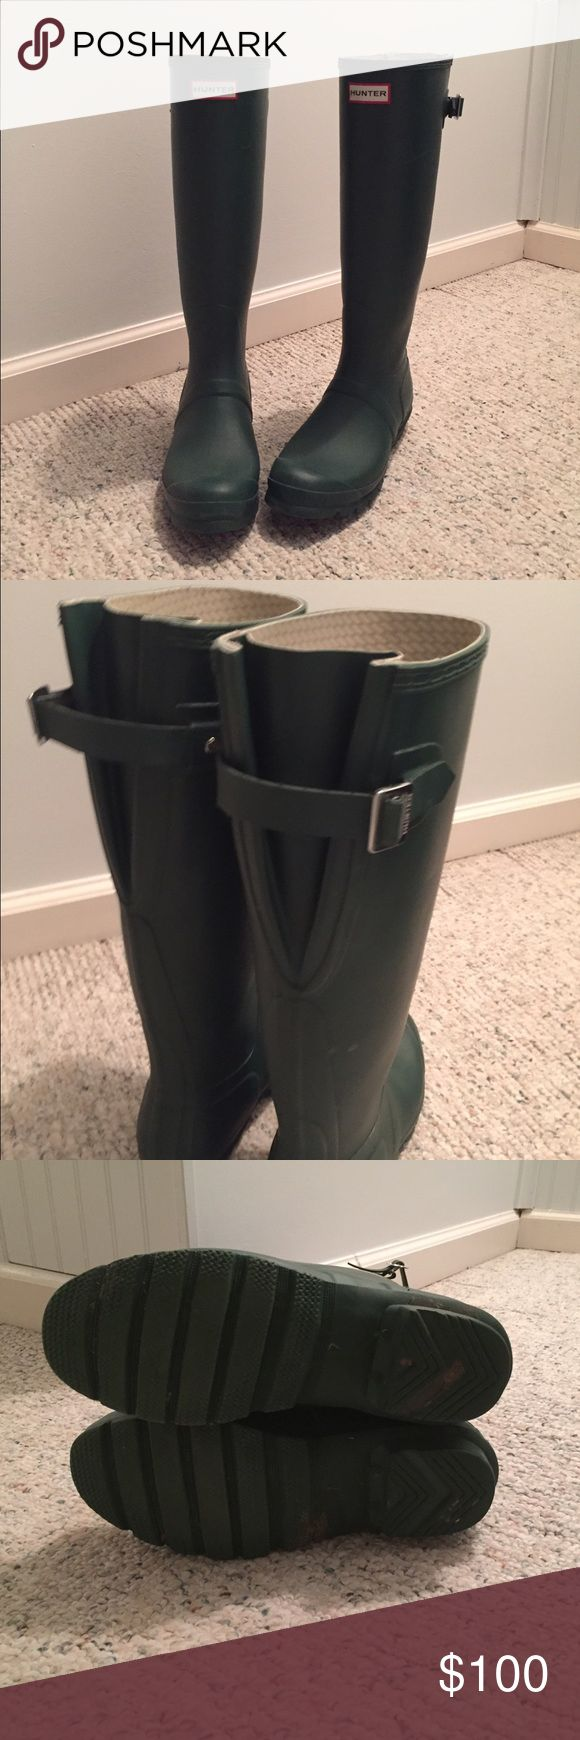 Wide Calf Hunter Rain Boots Wide-calf Hunter rain boots in matte green. GREAT condition!! Minor scuffs & scratches, the only noticeable one is pictured. Make an offer!!! Hunter Boots Shoes Winter & Rain Boots